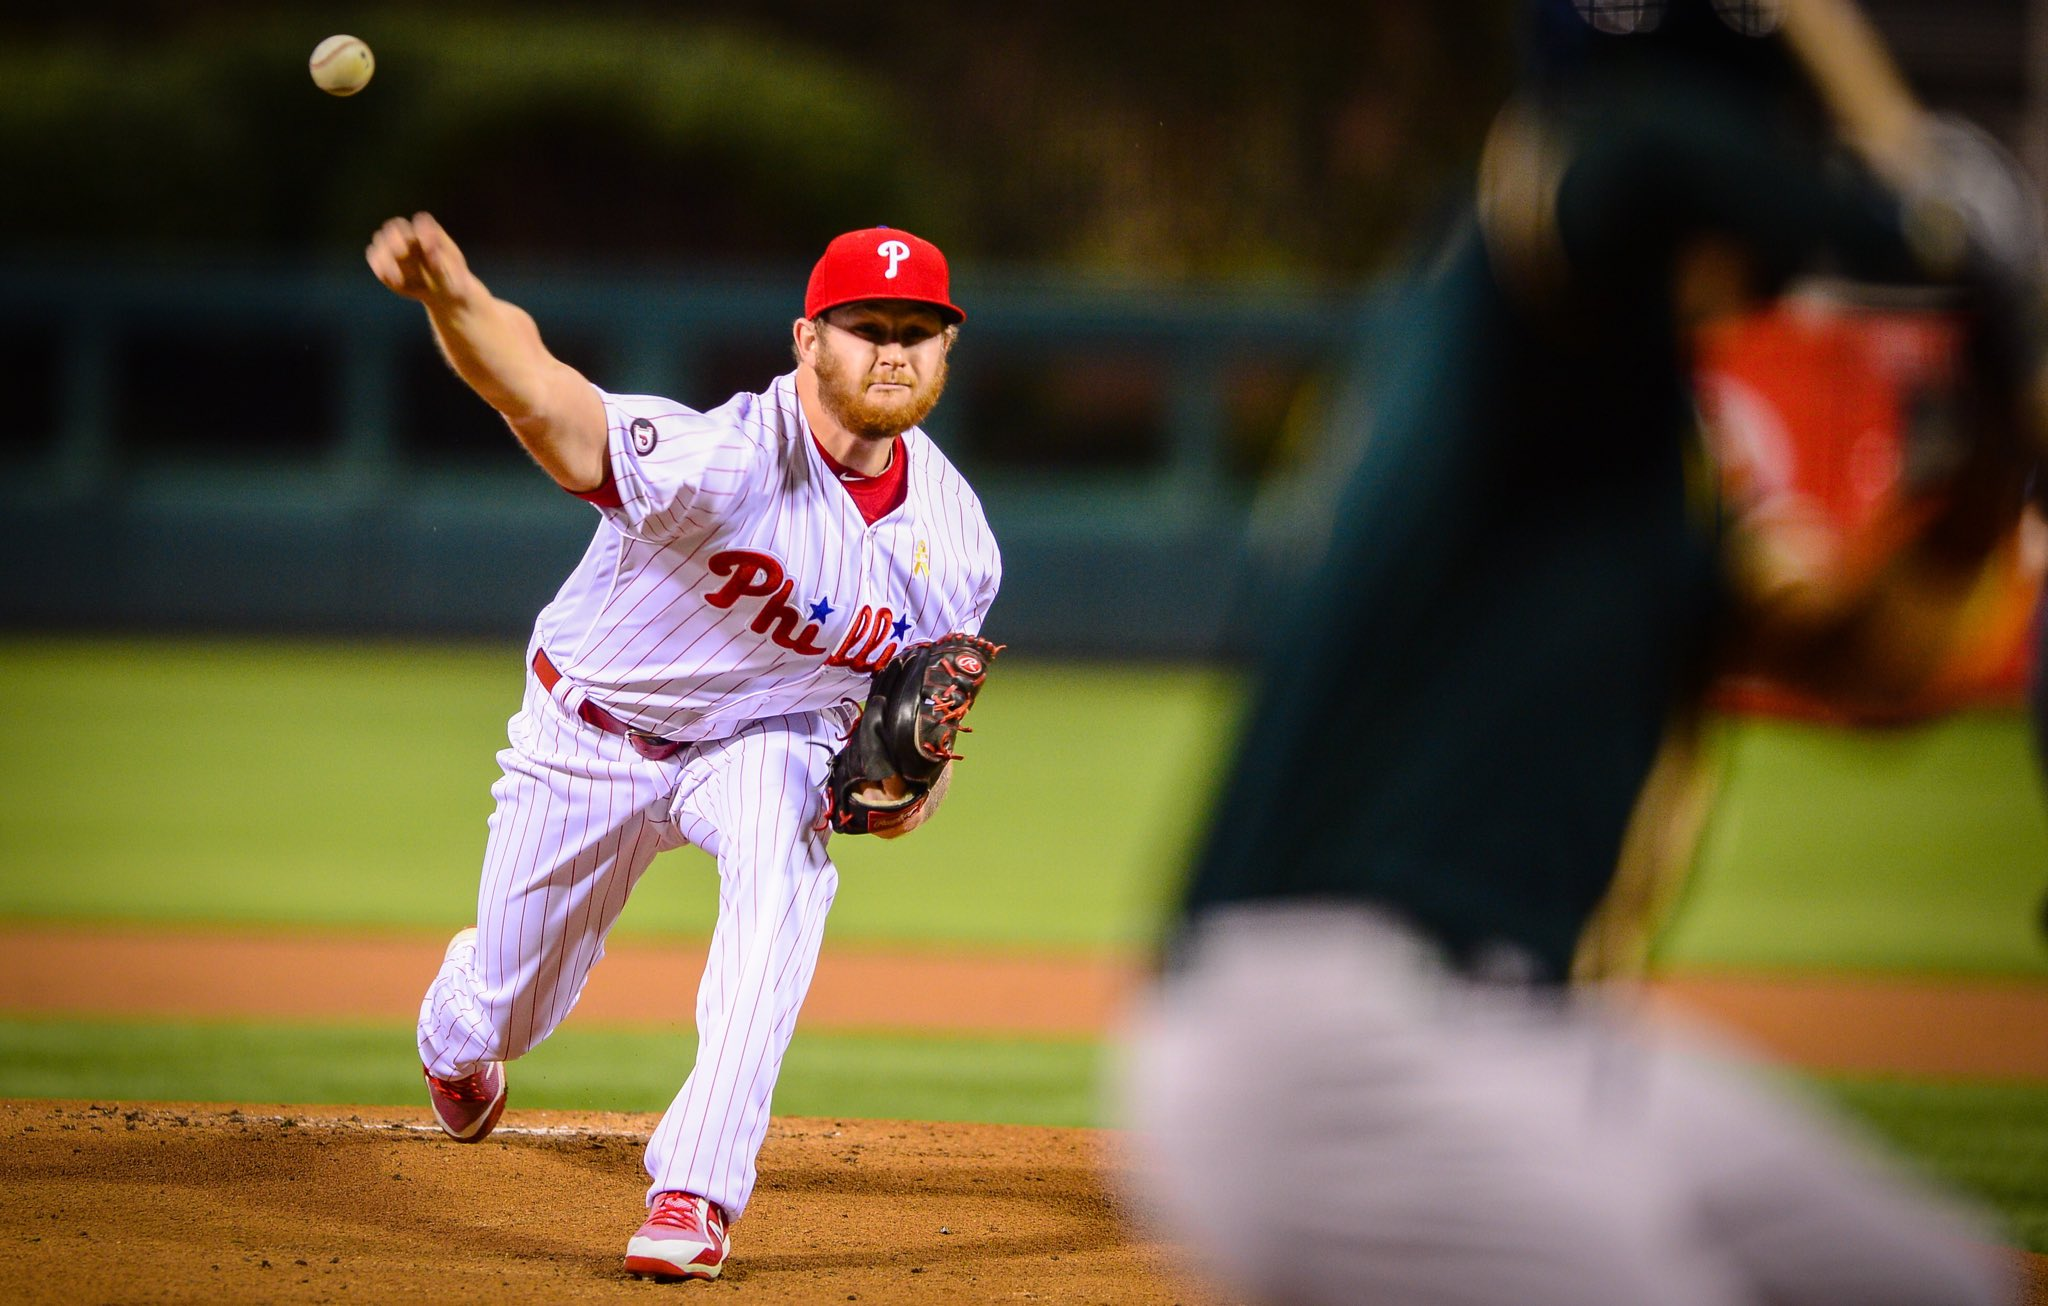 The A's jump out to an early lead, and are currently ahead 2-0 through 2.  Plenty of game to work with!   #GoPhils https://t.co/STSrl60r7s